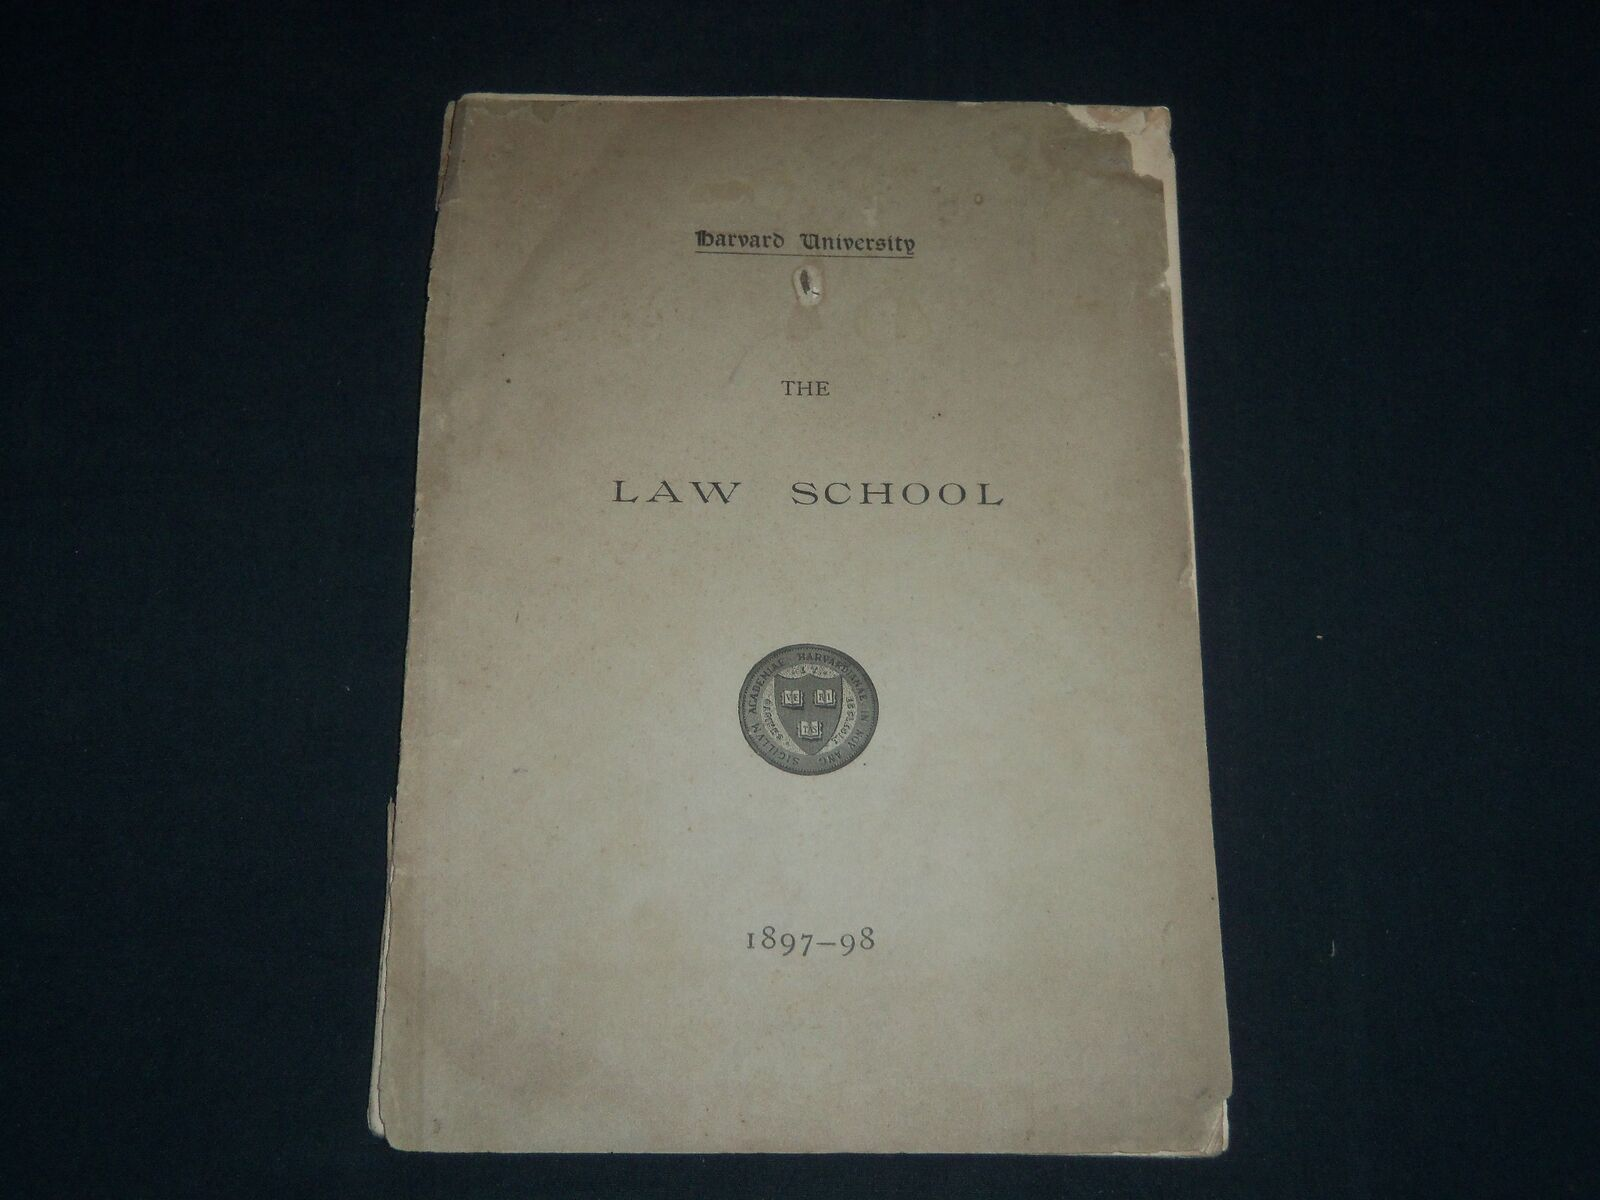 1897-1898 HARVARD UNIVERSITY LAW SCHOOL ANNOUNCEMENTS SOFTCOVER BOOK - J 4115 2